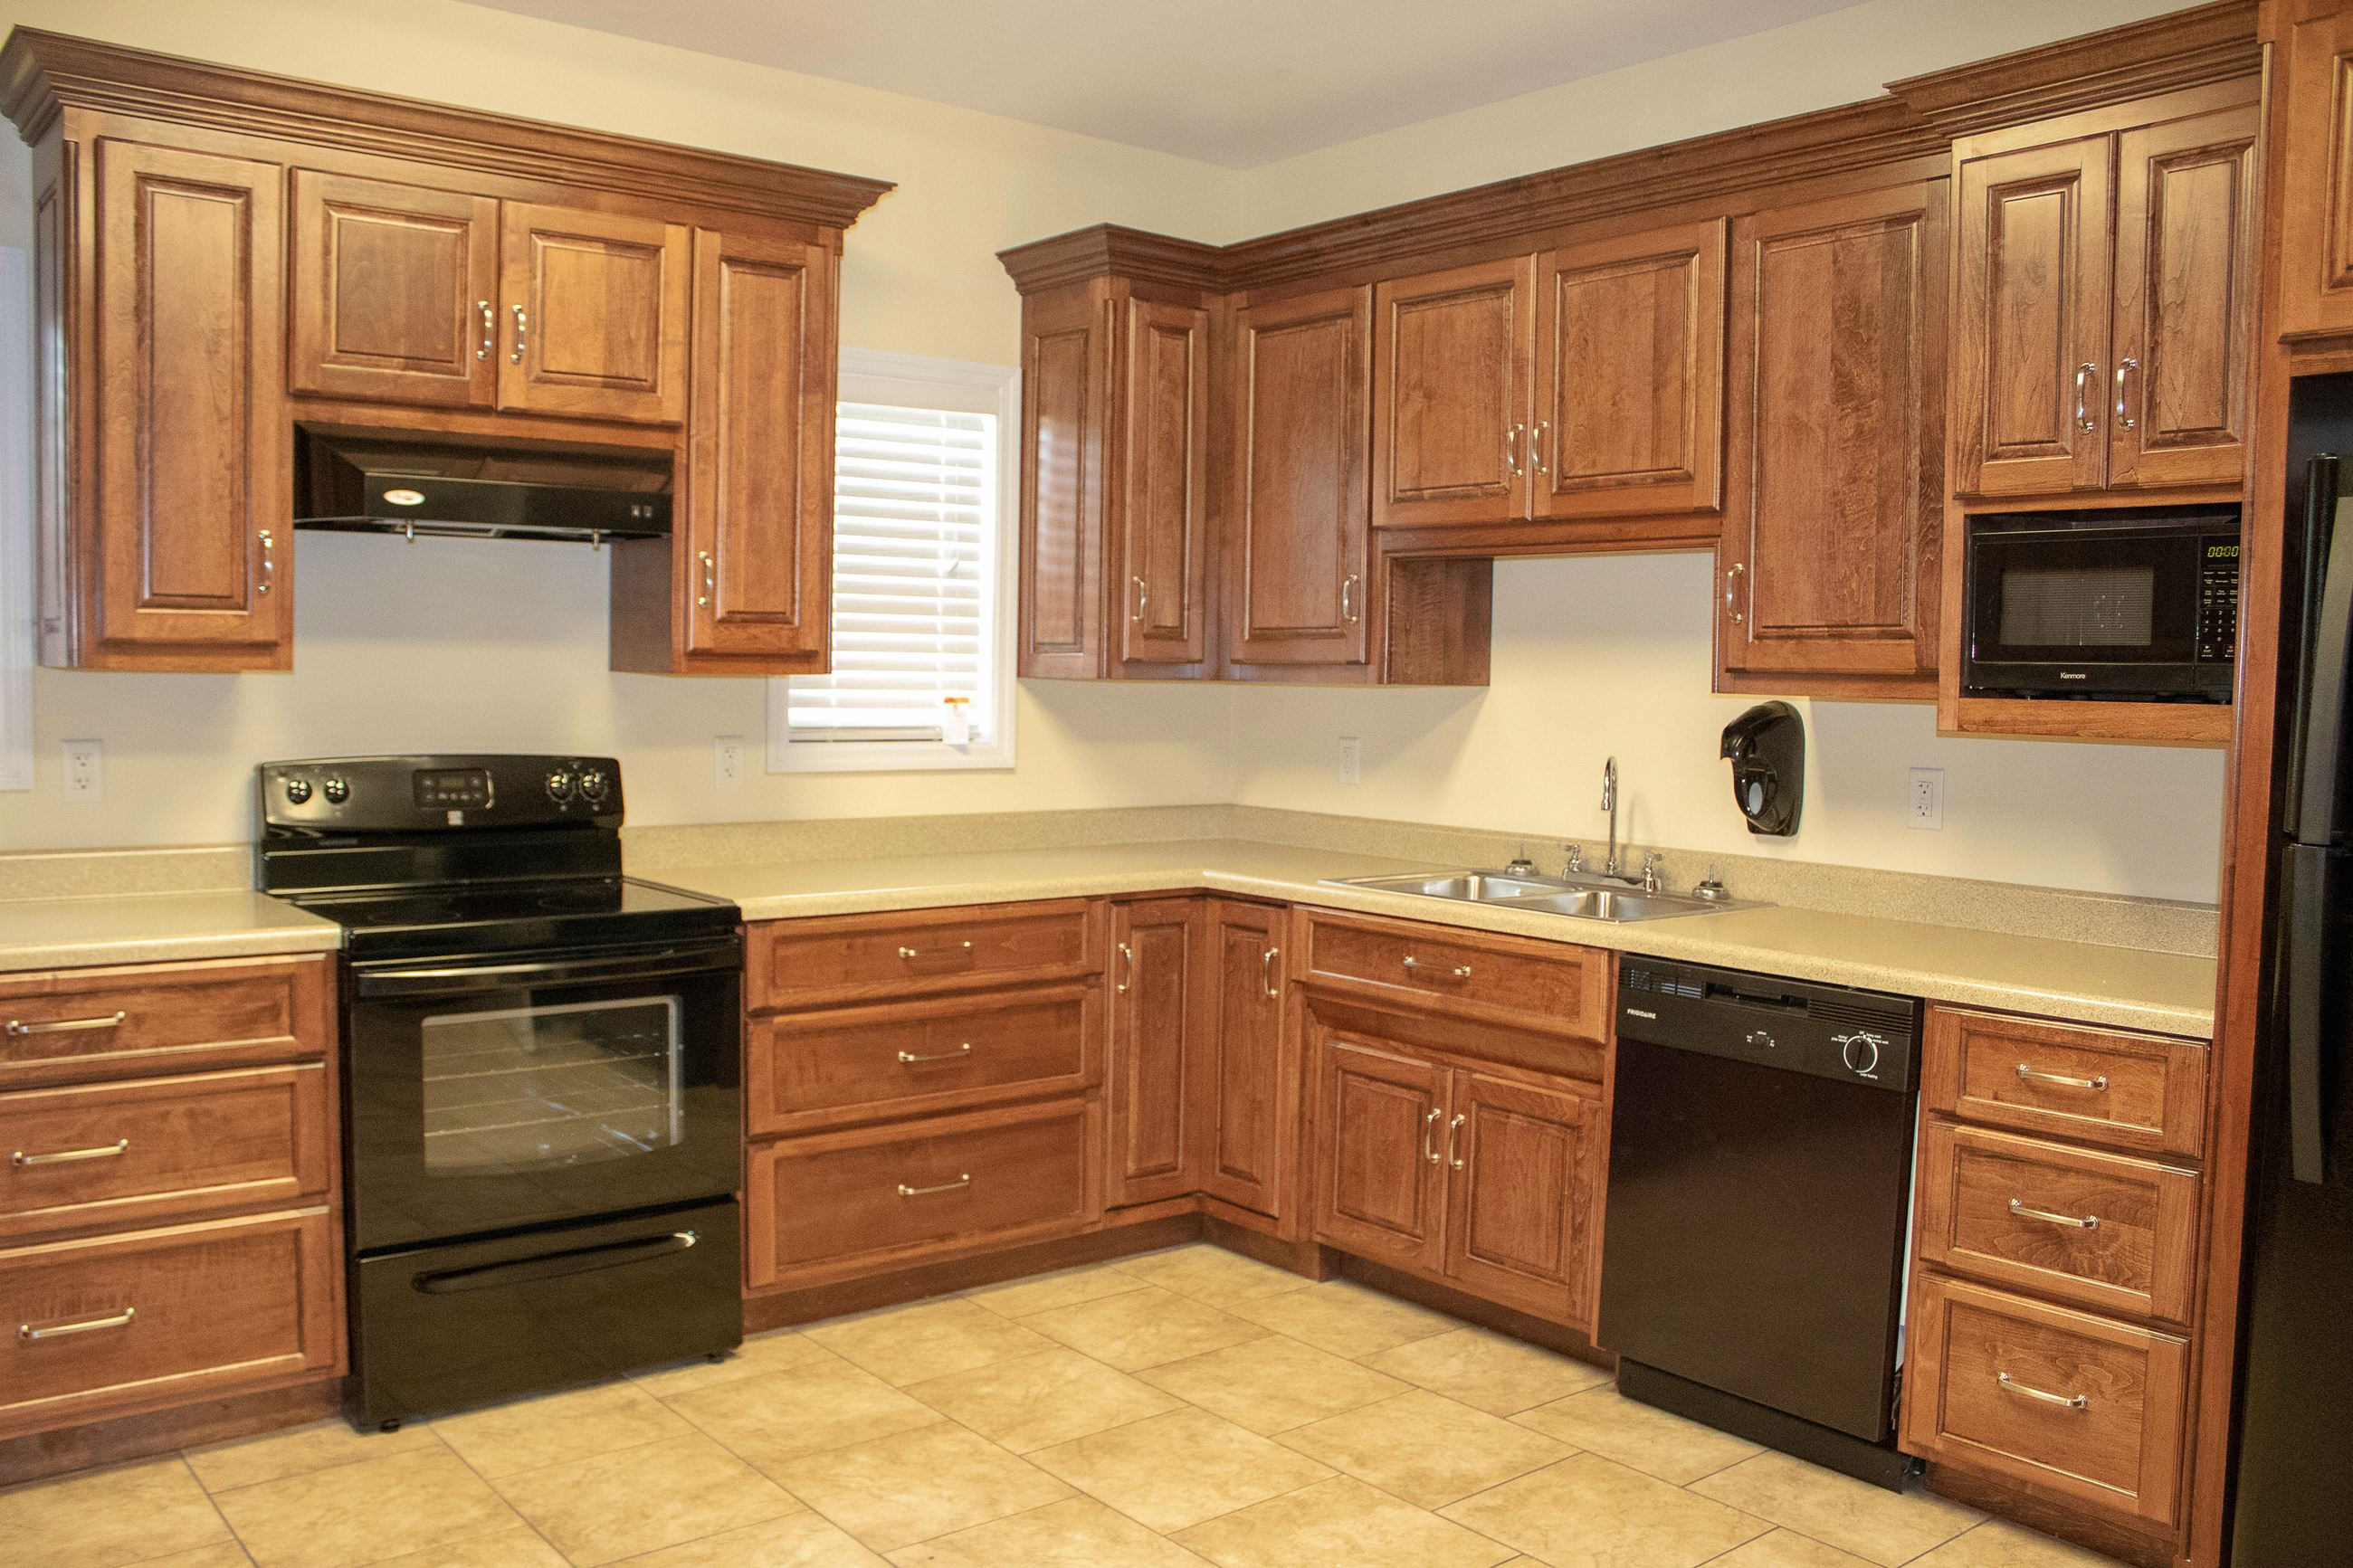 An image of the kitchen inside the Naylor Community Center with oak cabinets.